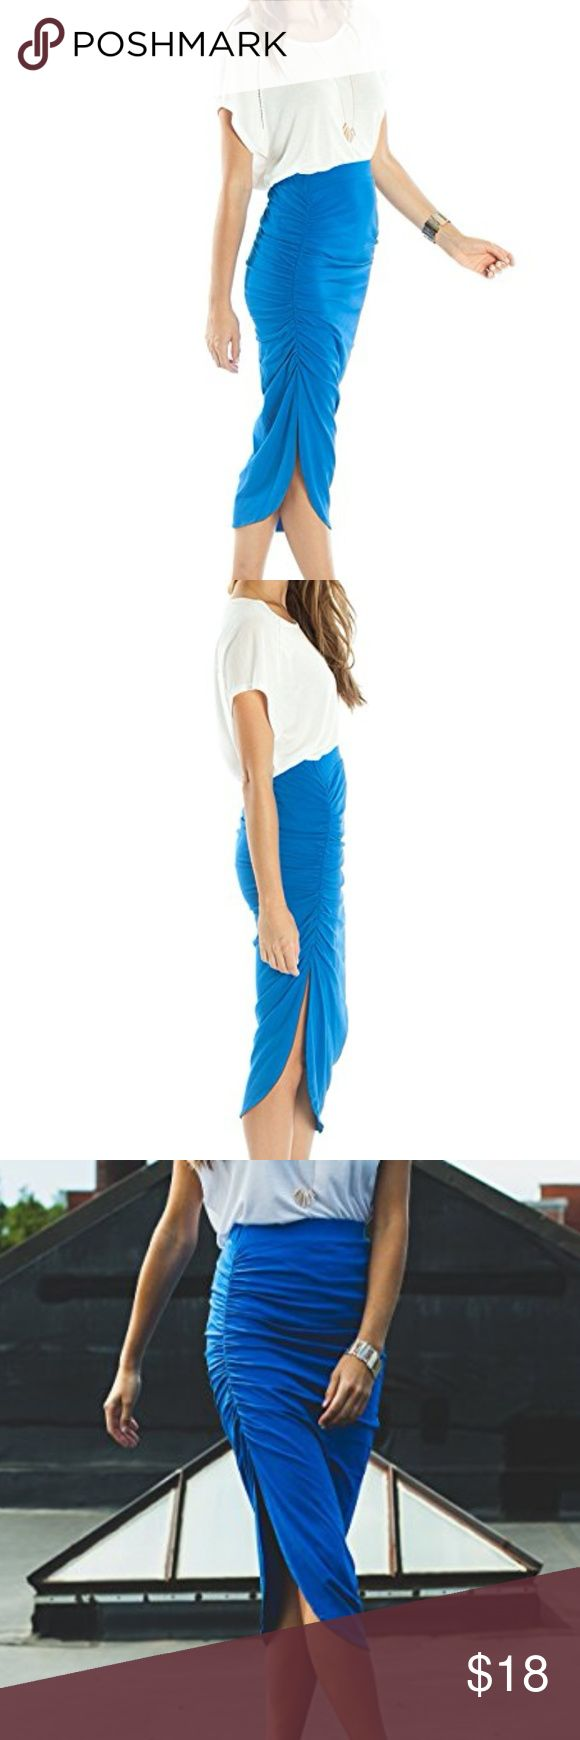 Asymmetrical Skirt by Ariana James, Blue Sz Small Experience versatility in this skirt as you go from a day at the office, to a night out on the town. Sexy and sophisticated: the Marina skirt features a side slit and delicate rouching, creating a flattering asymmetrical shape for an elongating effect. The soft cotton and stretchy elastic waistband accentuates figures and add an undeniable sense of comfort making this a multifaceted must-have addition to your wardrobe!   SIZING & FIT…